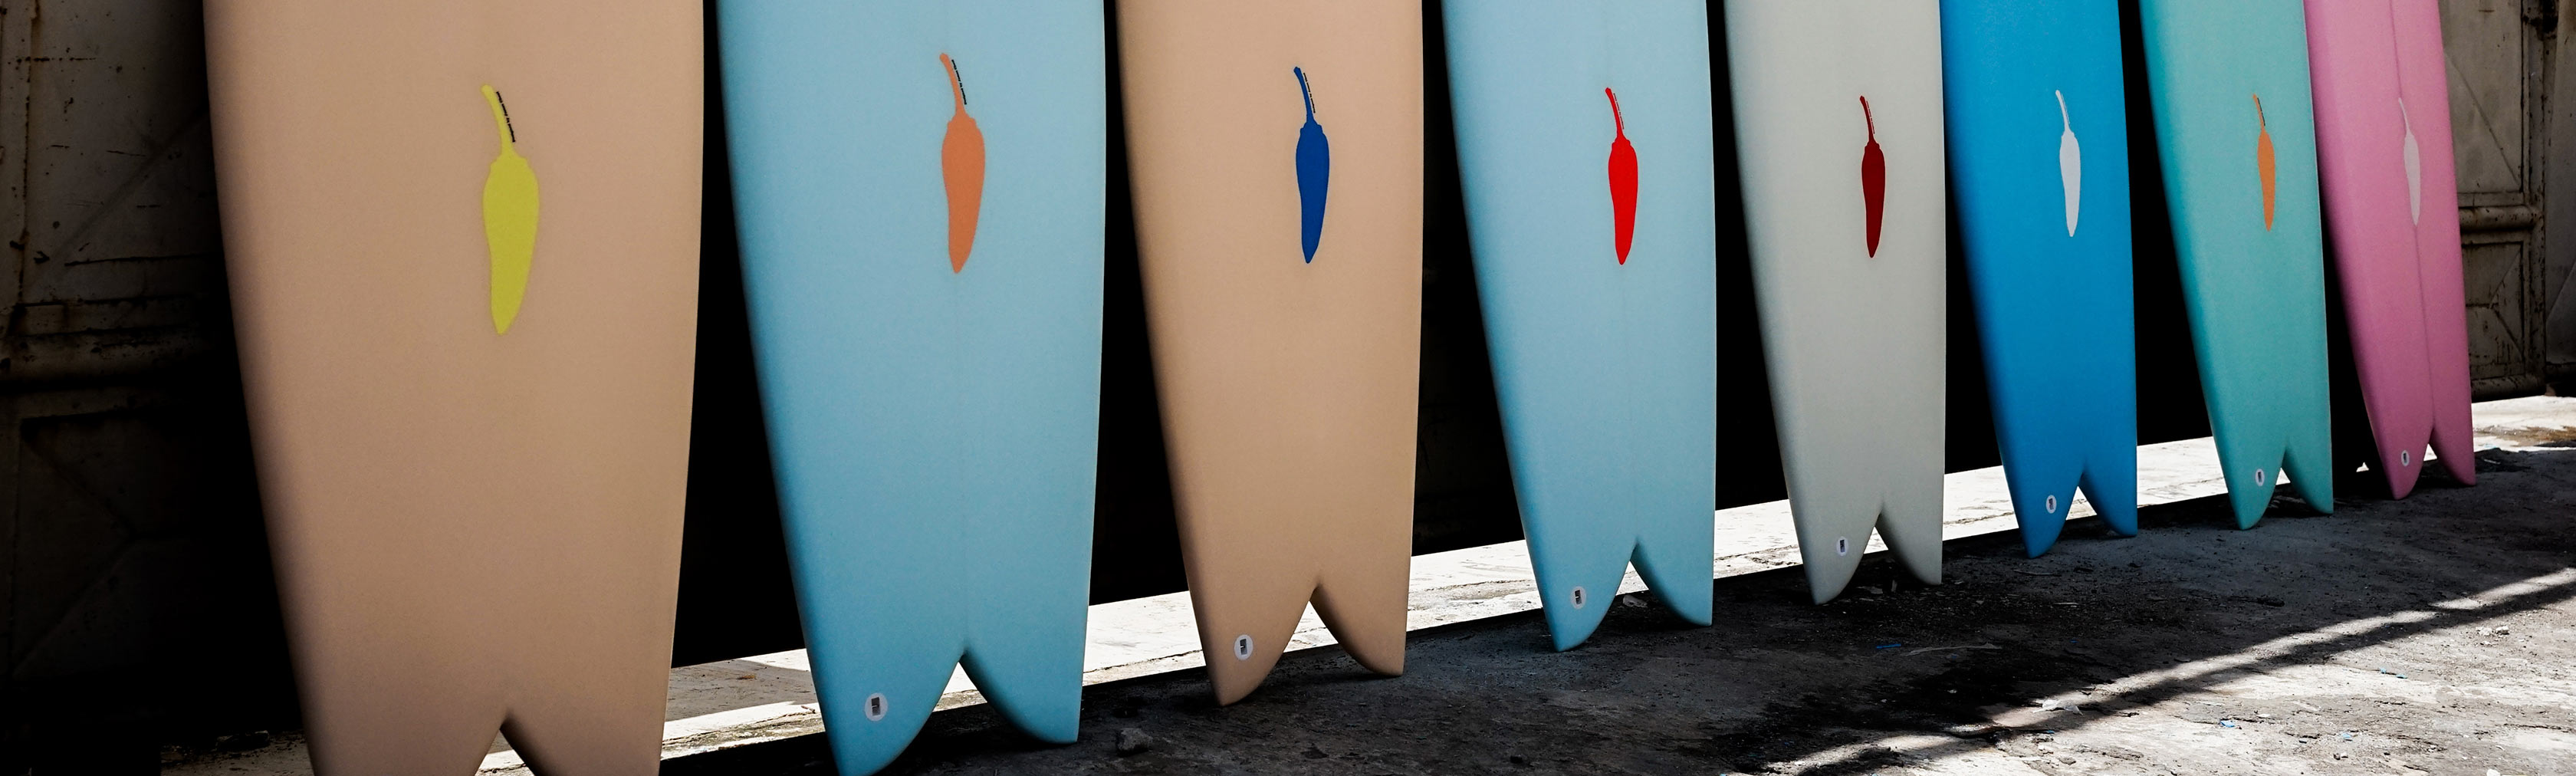 Chilli Surfboards Store